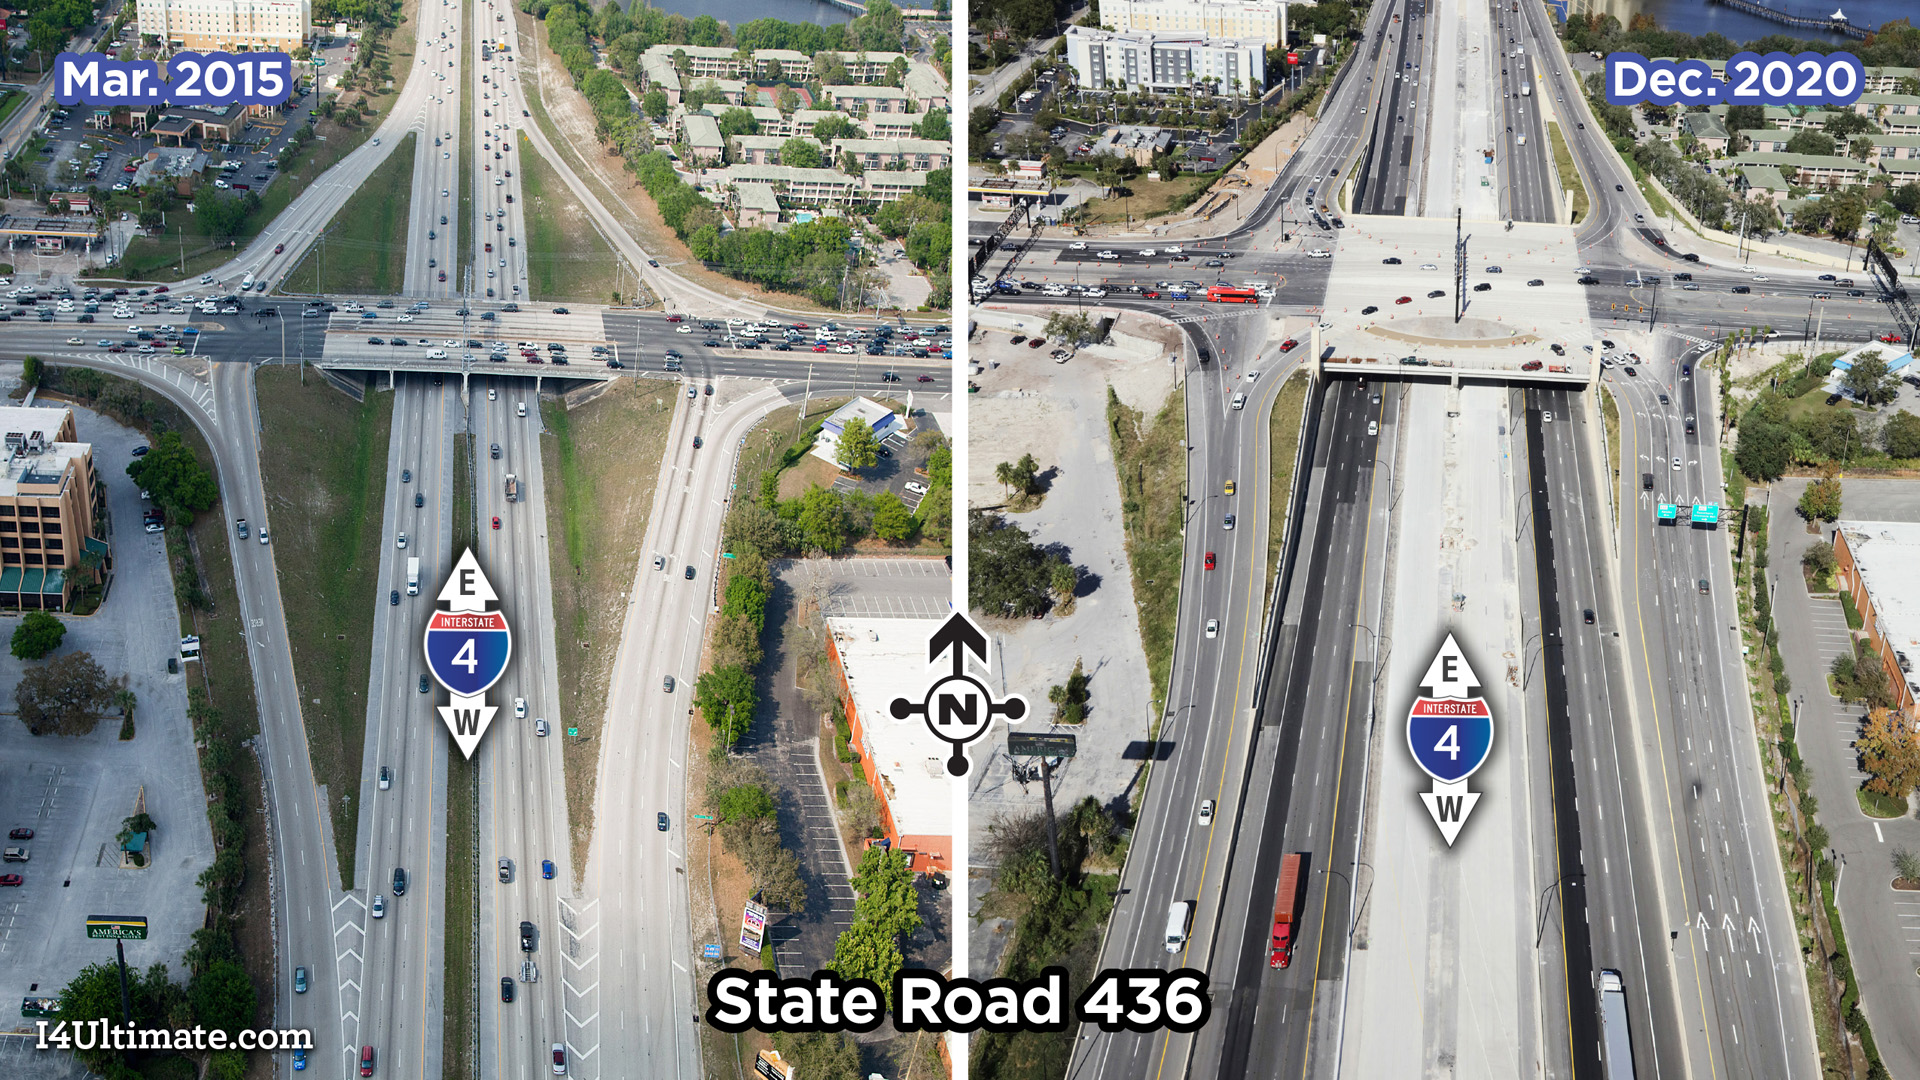 4738-I4Ultimate-GUL-campaign-images-20210212-21-State-Road-436